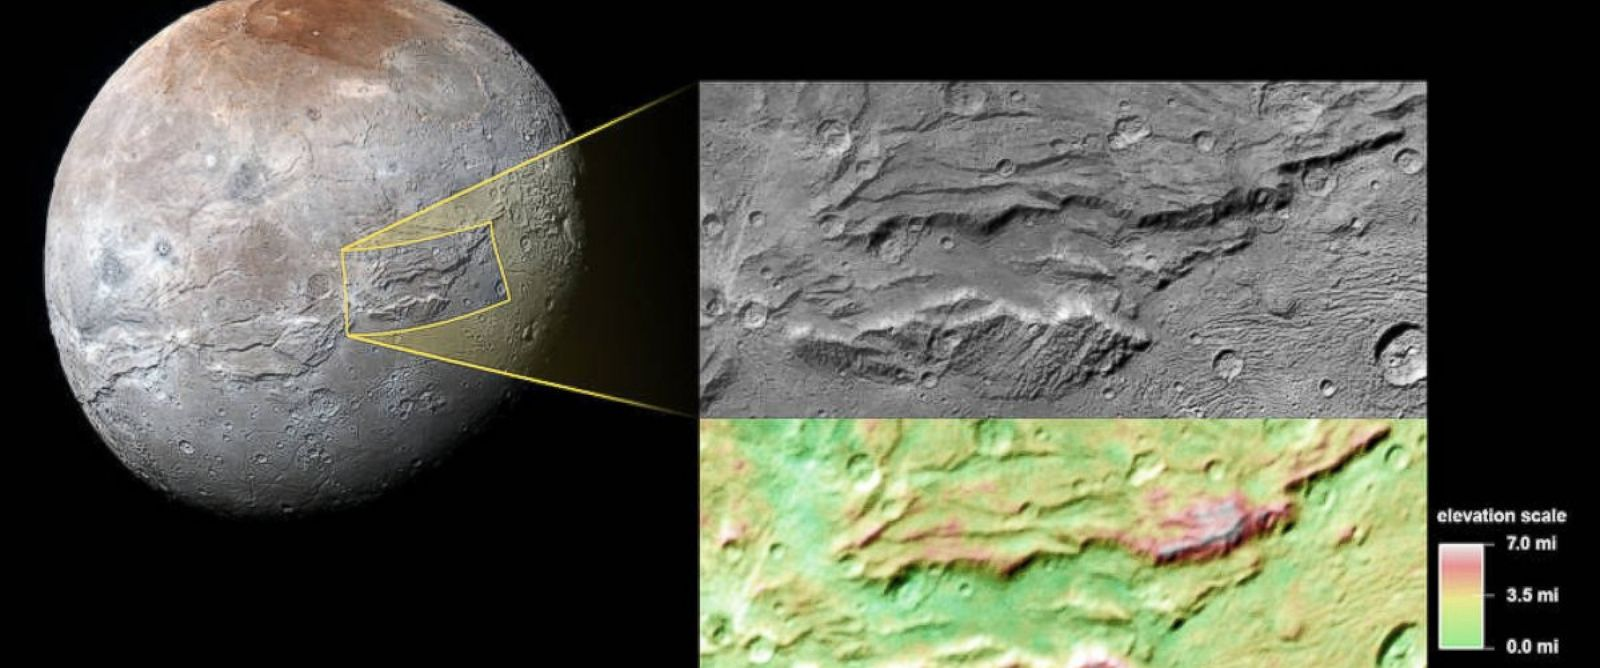 A close-up of the canyons on Charon, Plutos big moon, taken by New Horizons during its close approach to the Pluto system last July. Multiple views taken by New Horizons as it passed by Charon allow stereo measurements of topography.